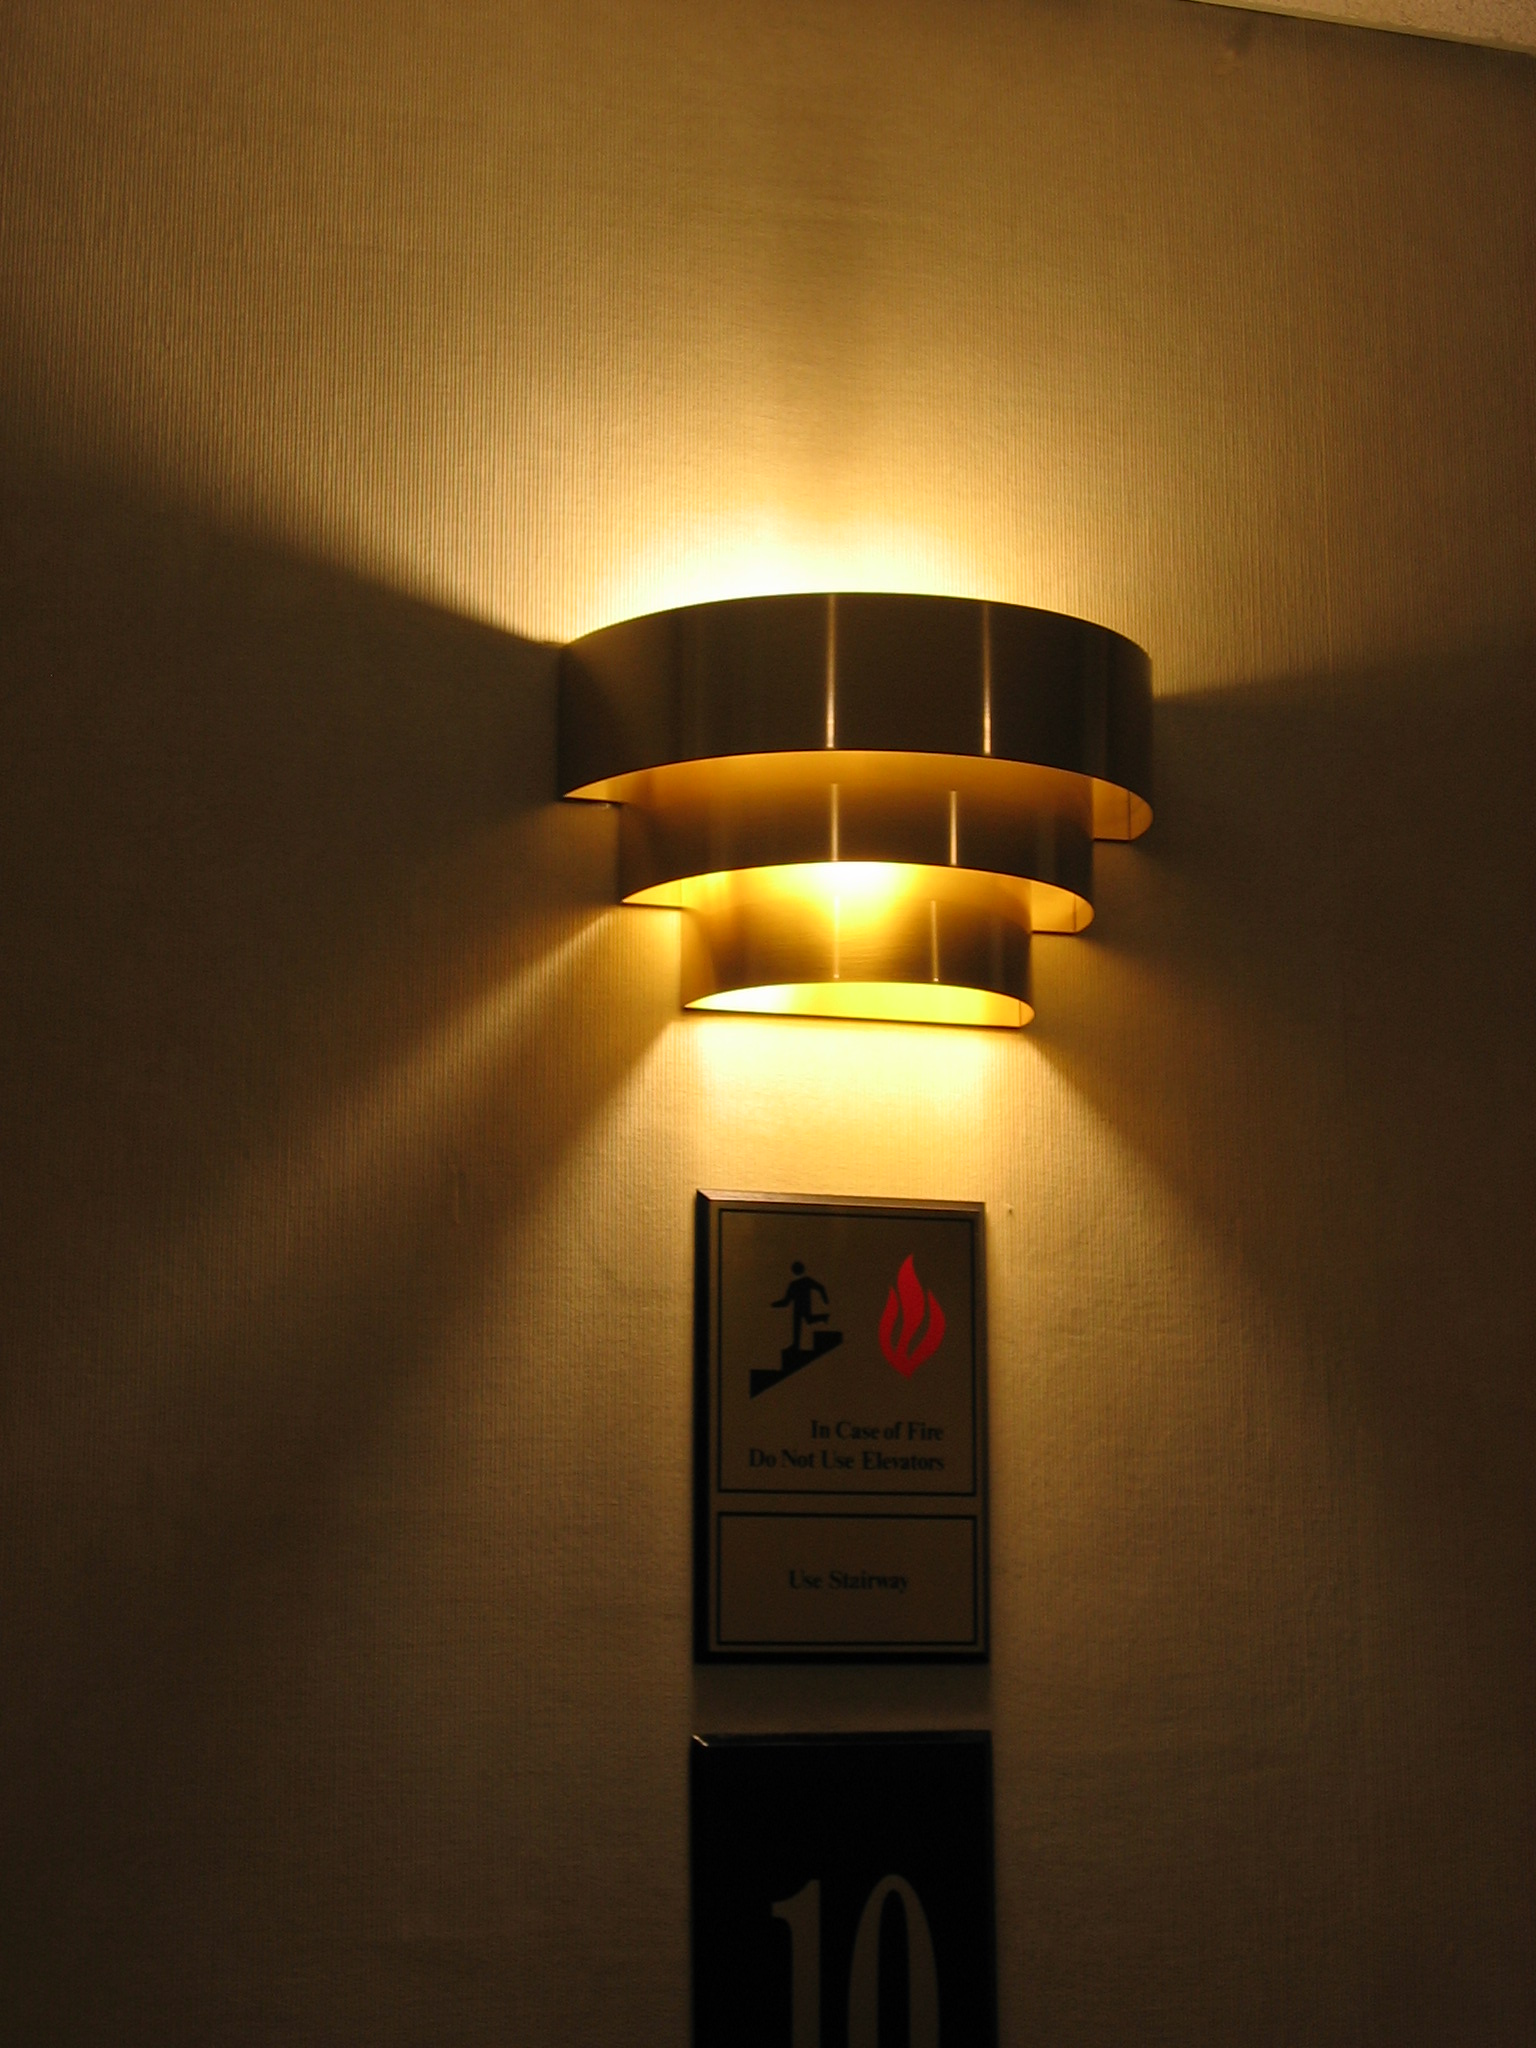 light fixture by elevator.JPG